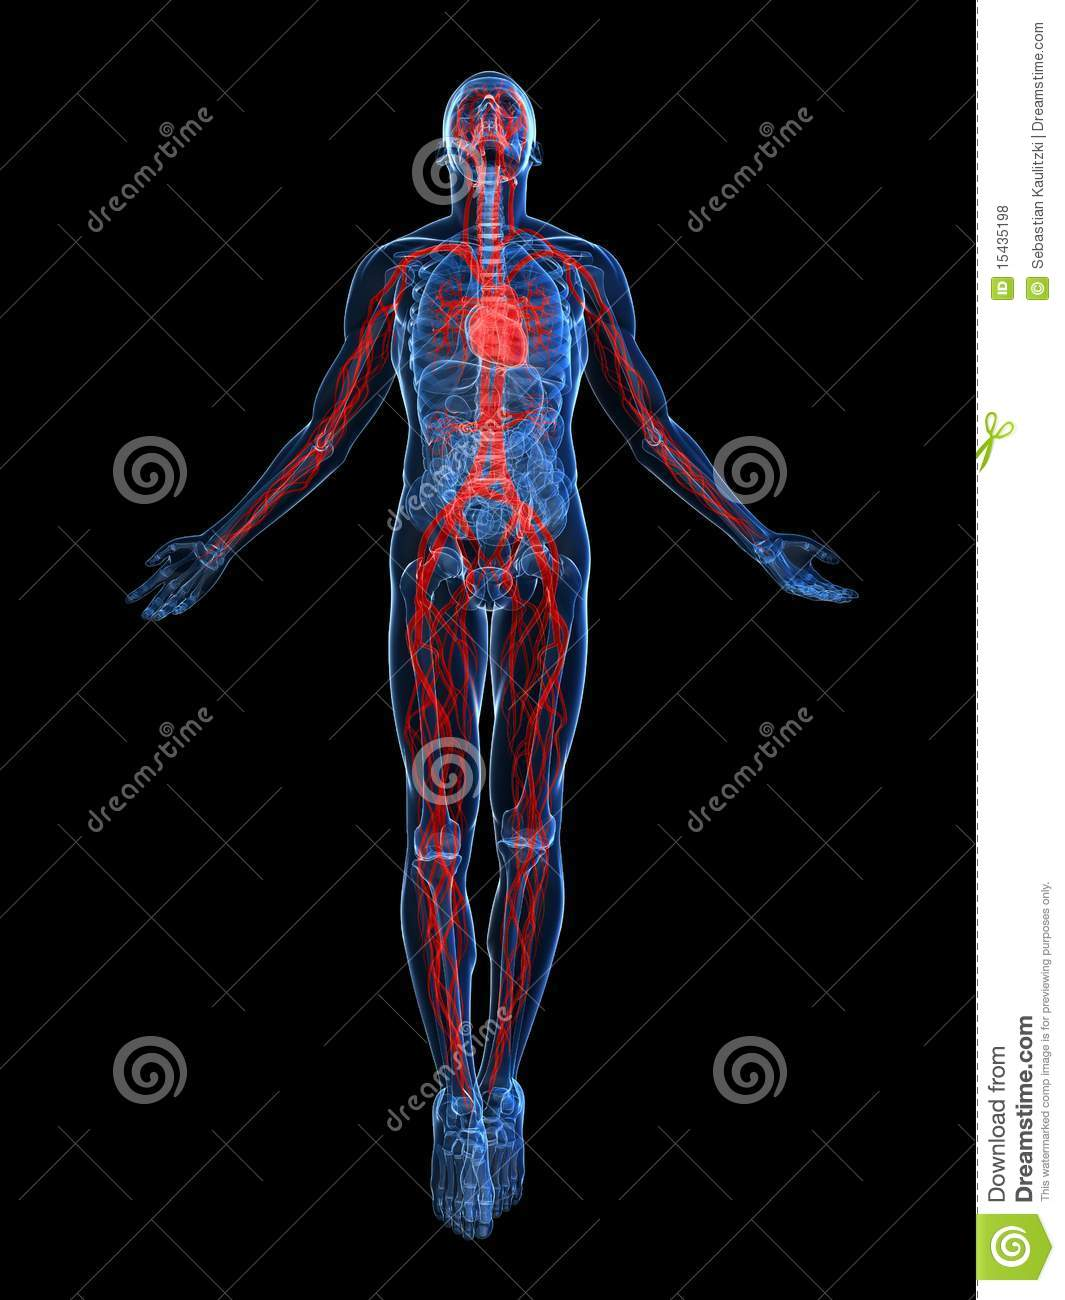 Human Vascular System Stock Illustration Illustration Of Anatomy